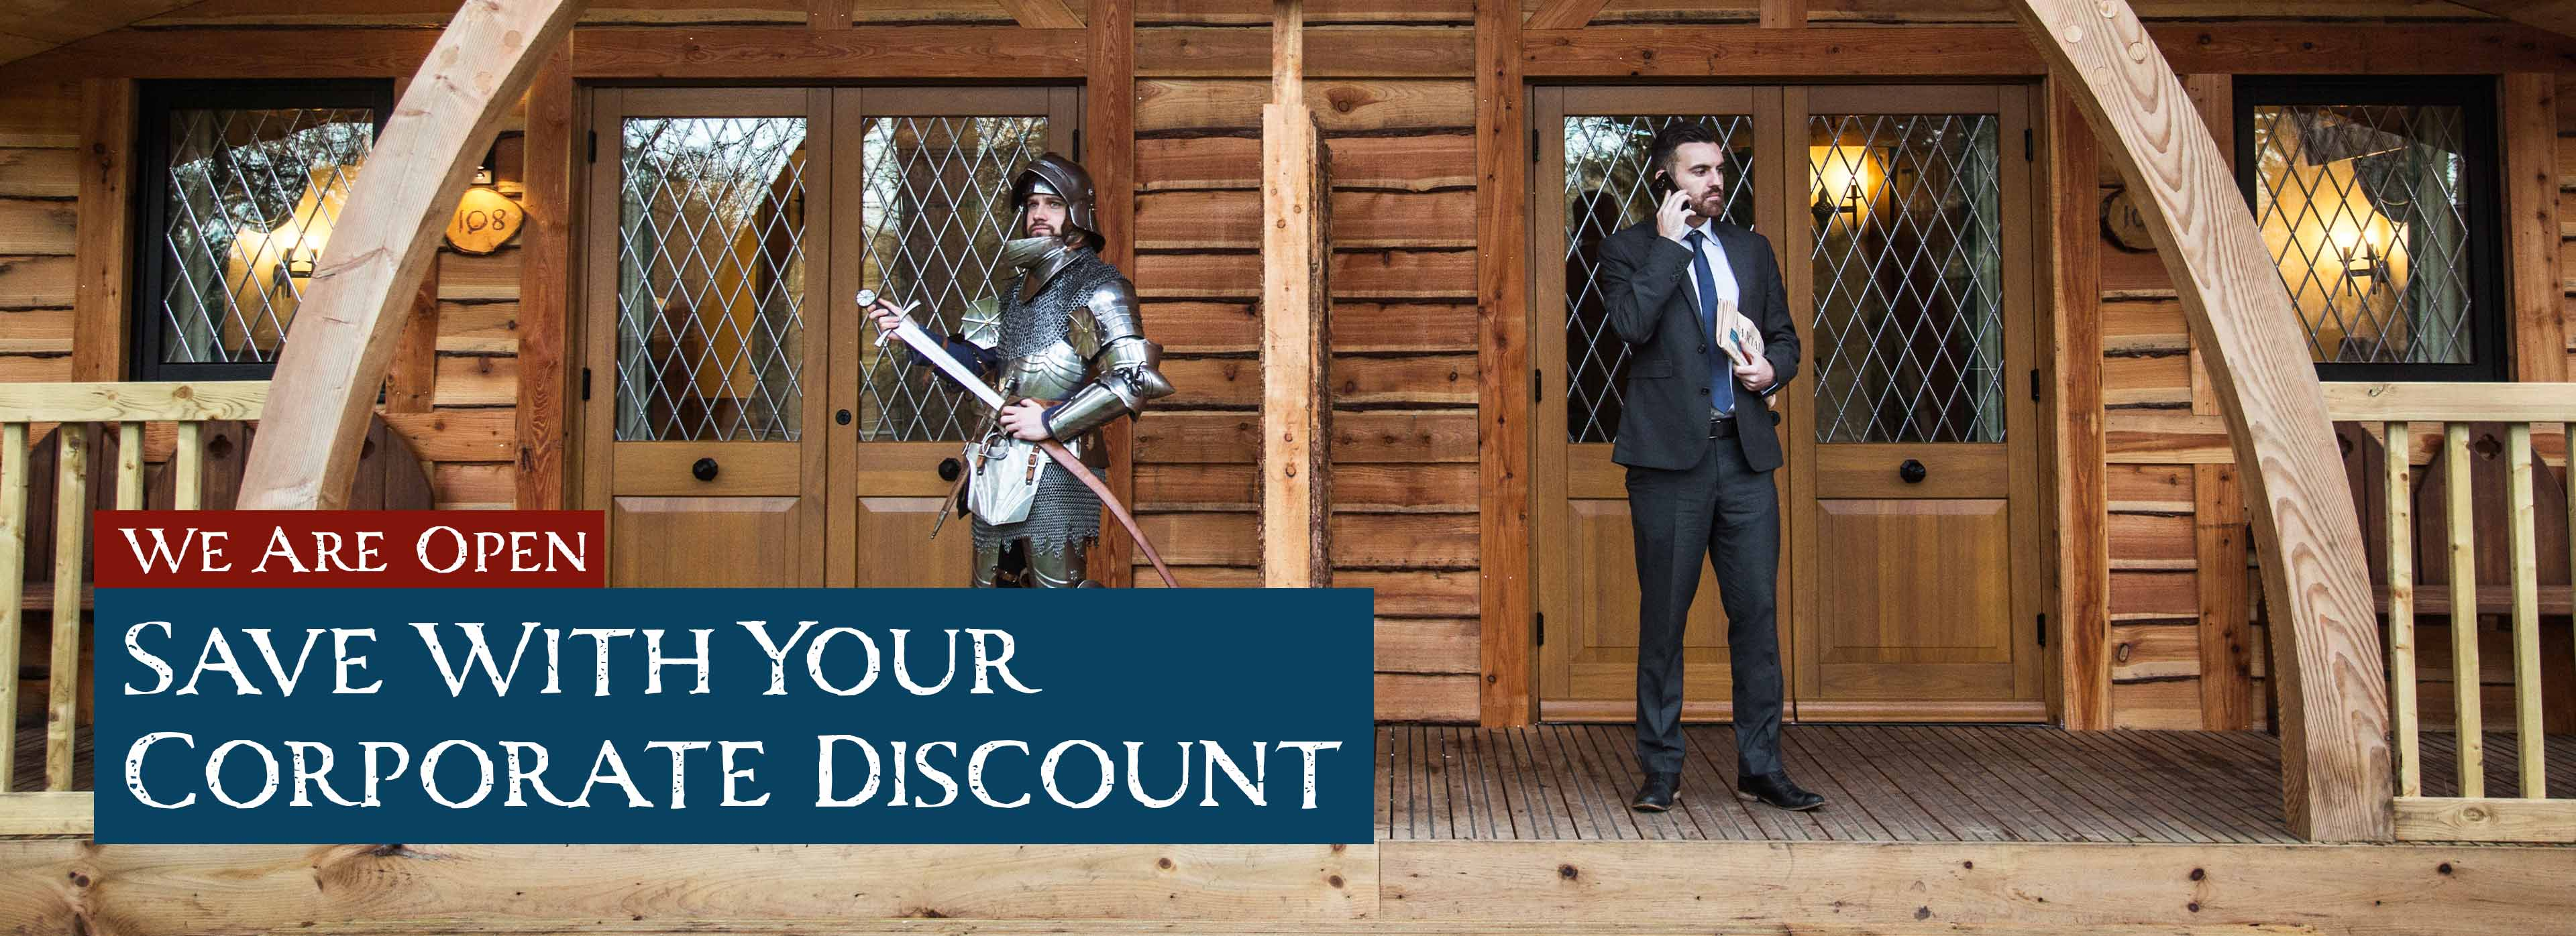 Exclusive up to 20% corporate discount